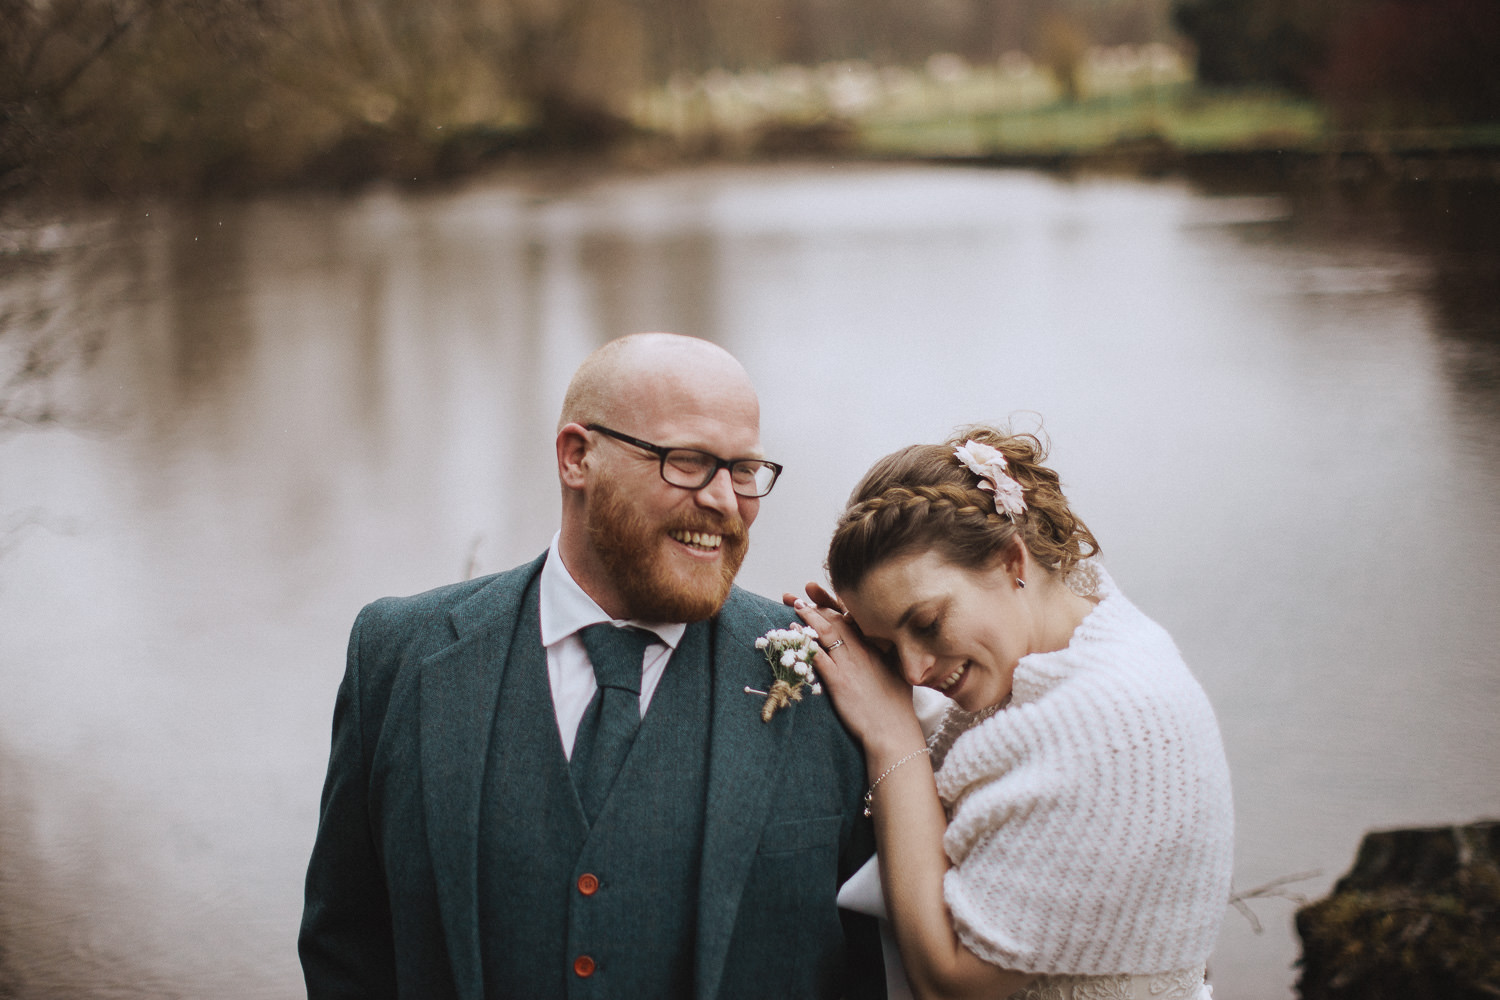 Bride and groom laughing together in the lake district